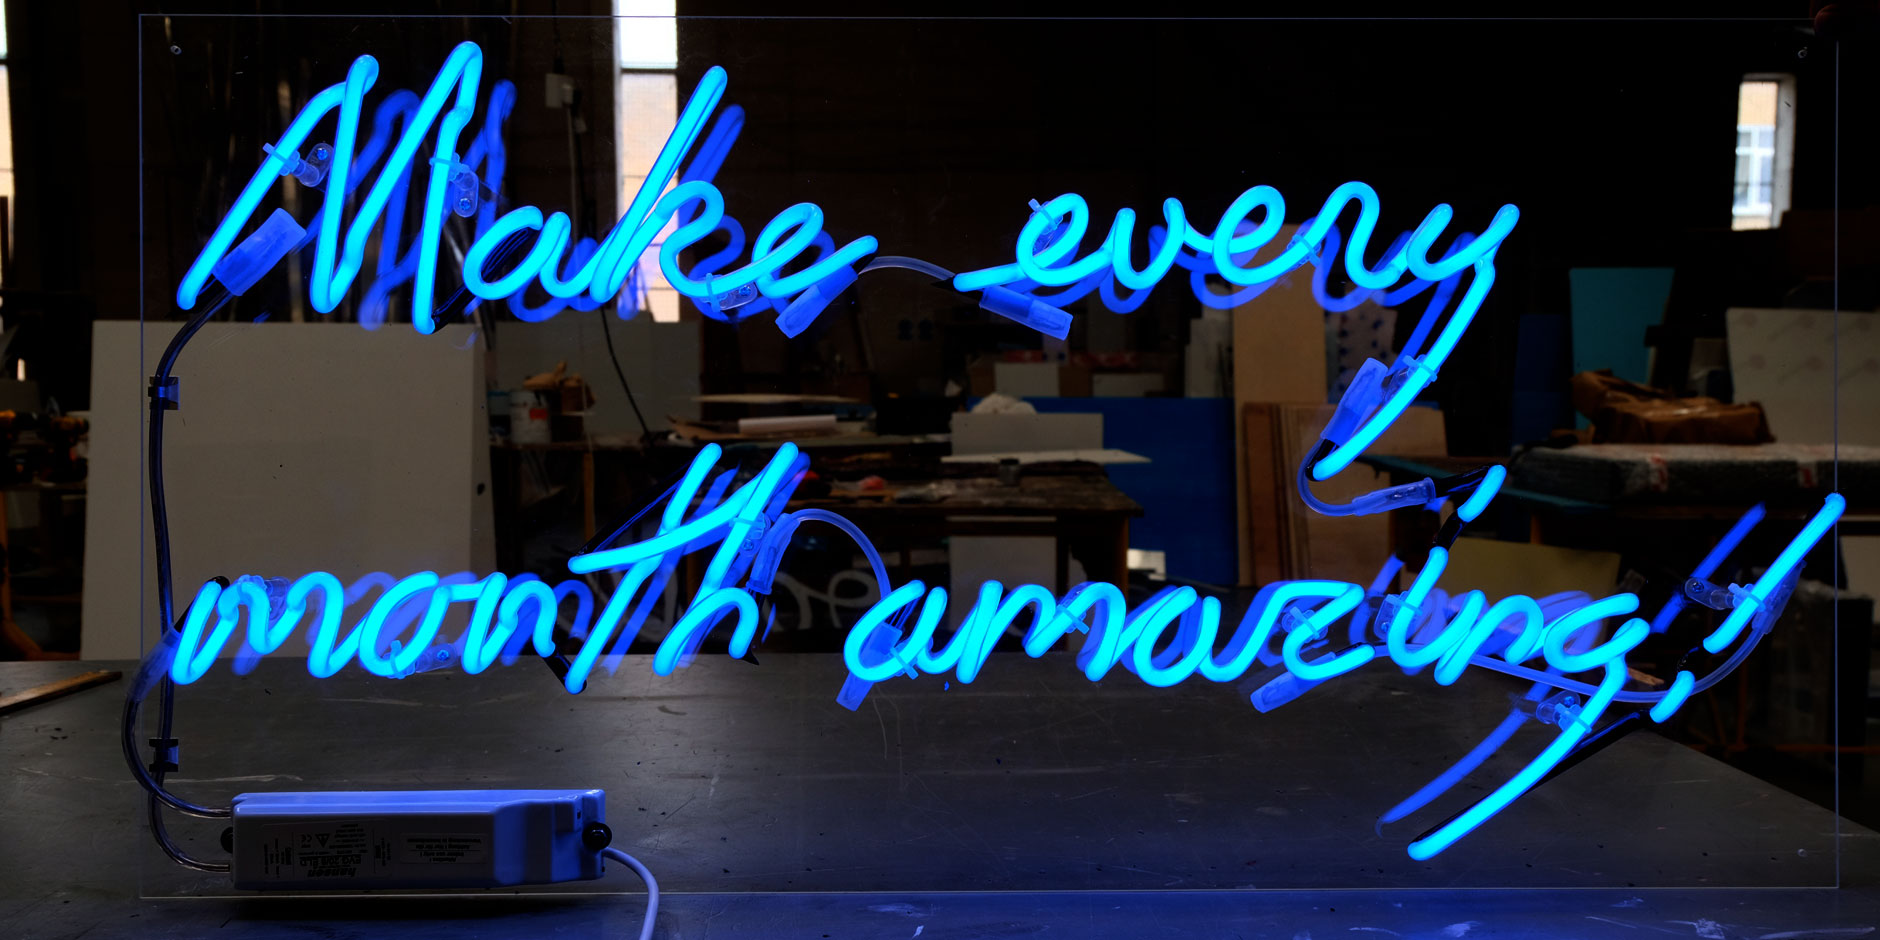 Make Every Month Amazing neon sign